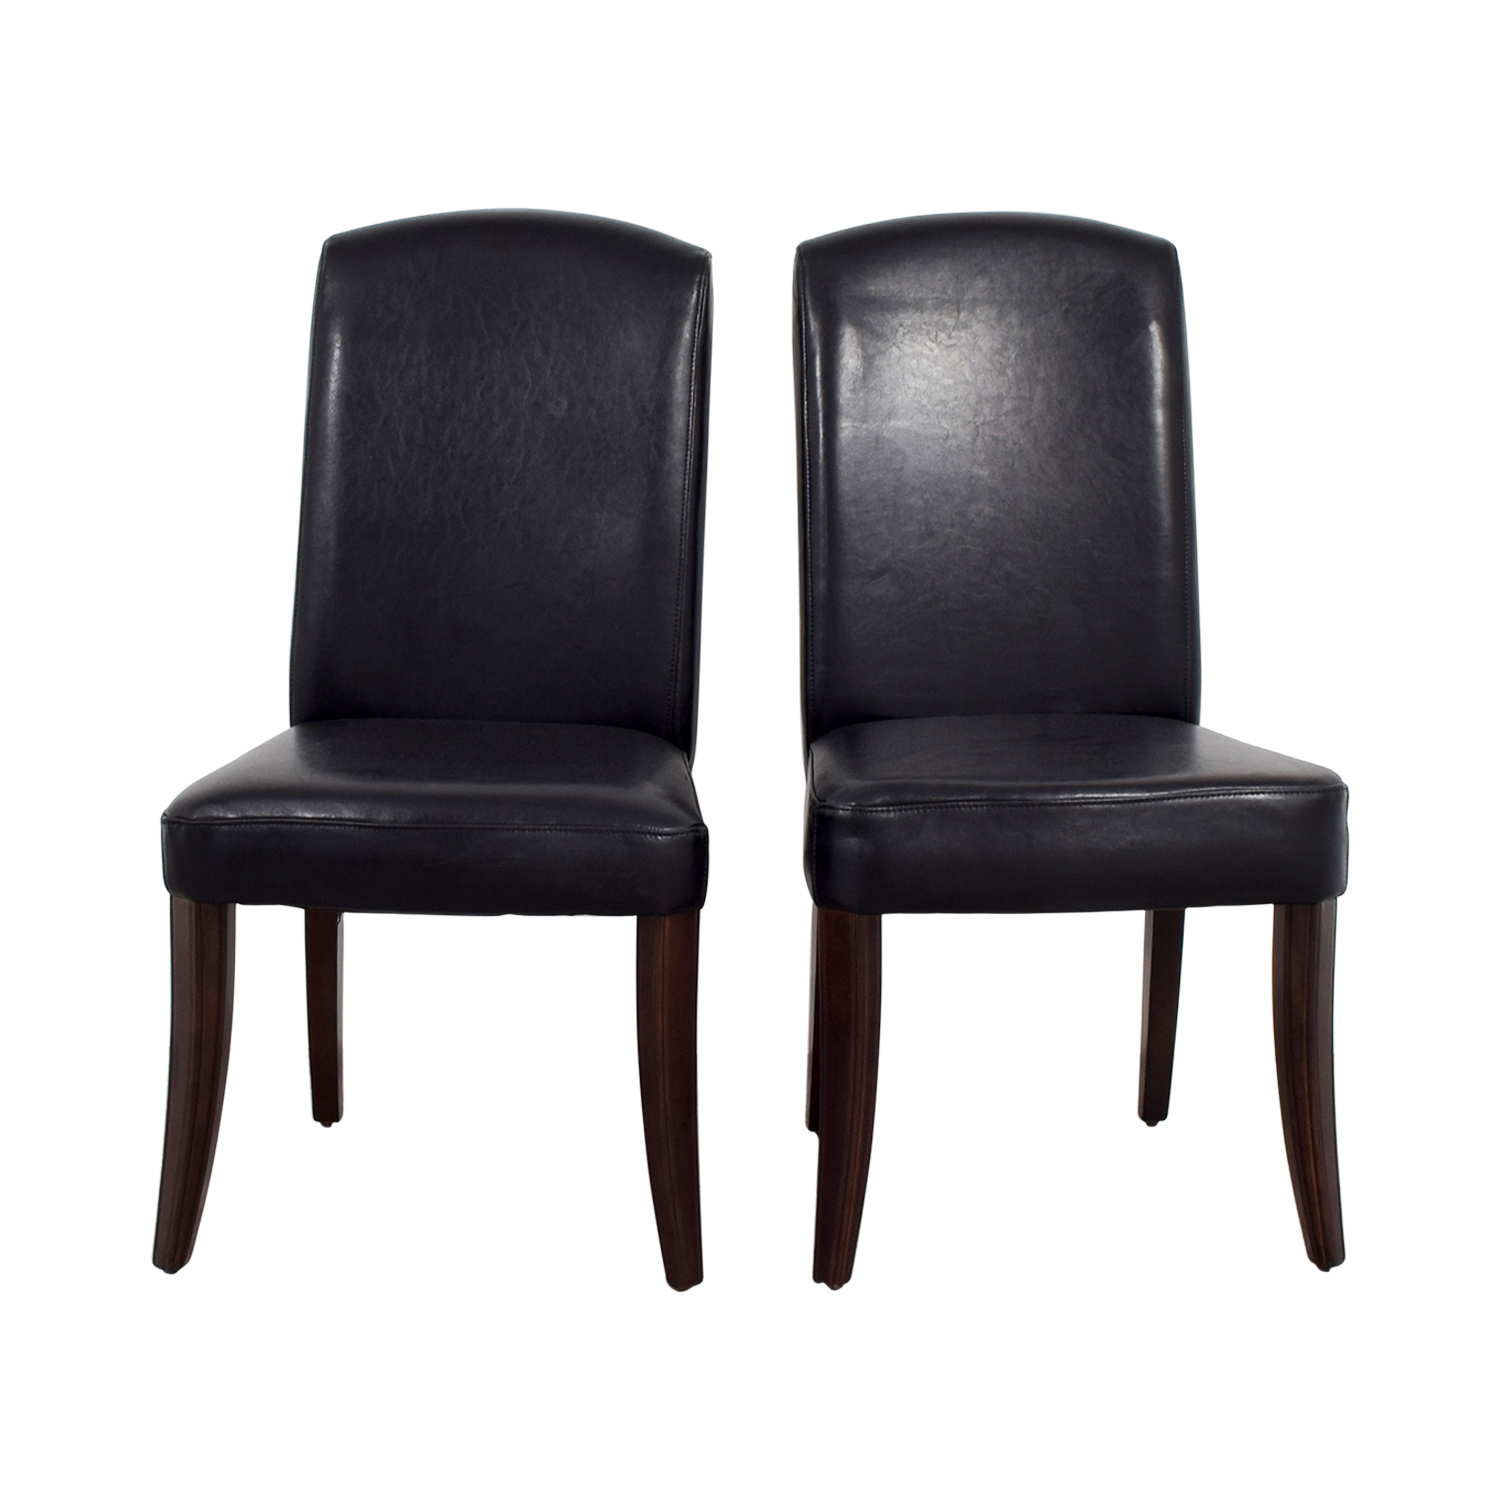 Black Padded Leatherette High Back Chairs / Chairs